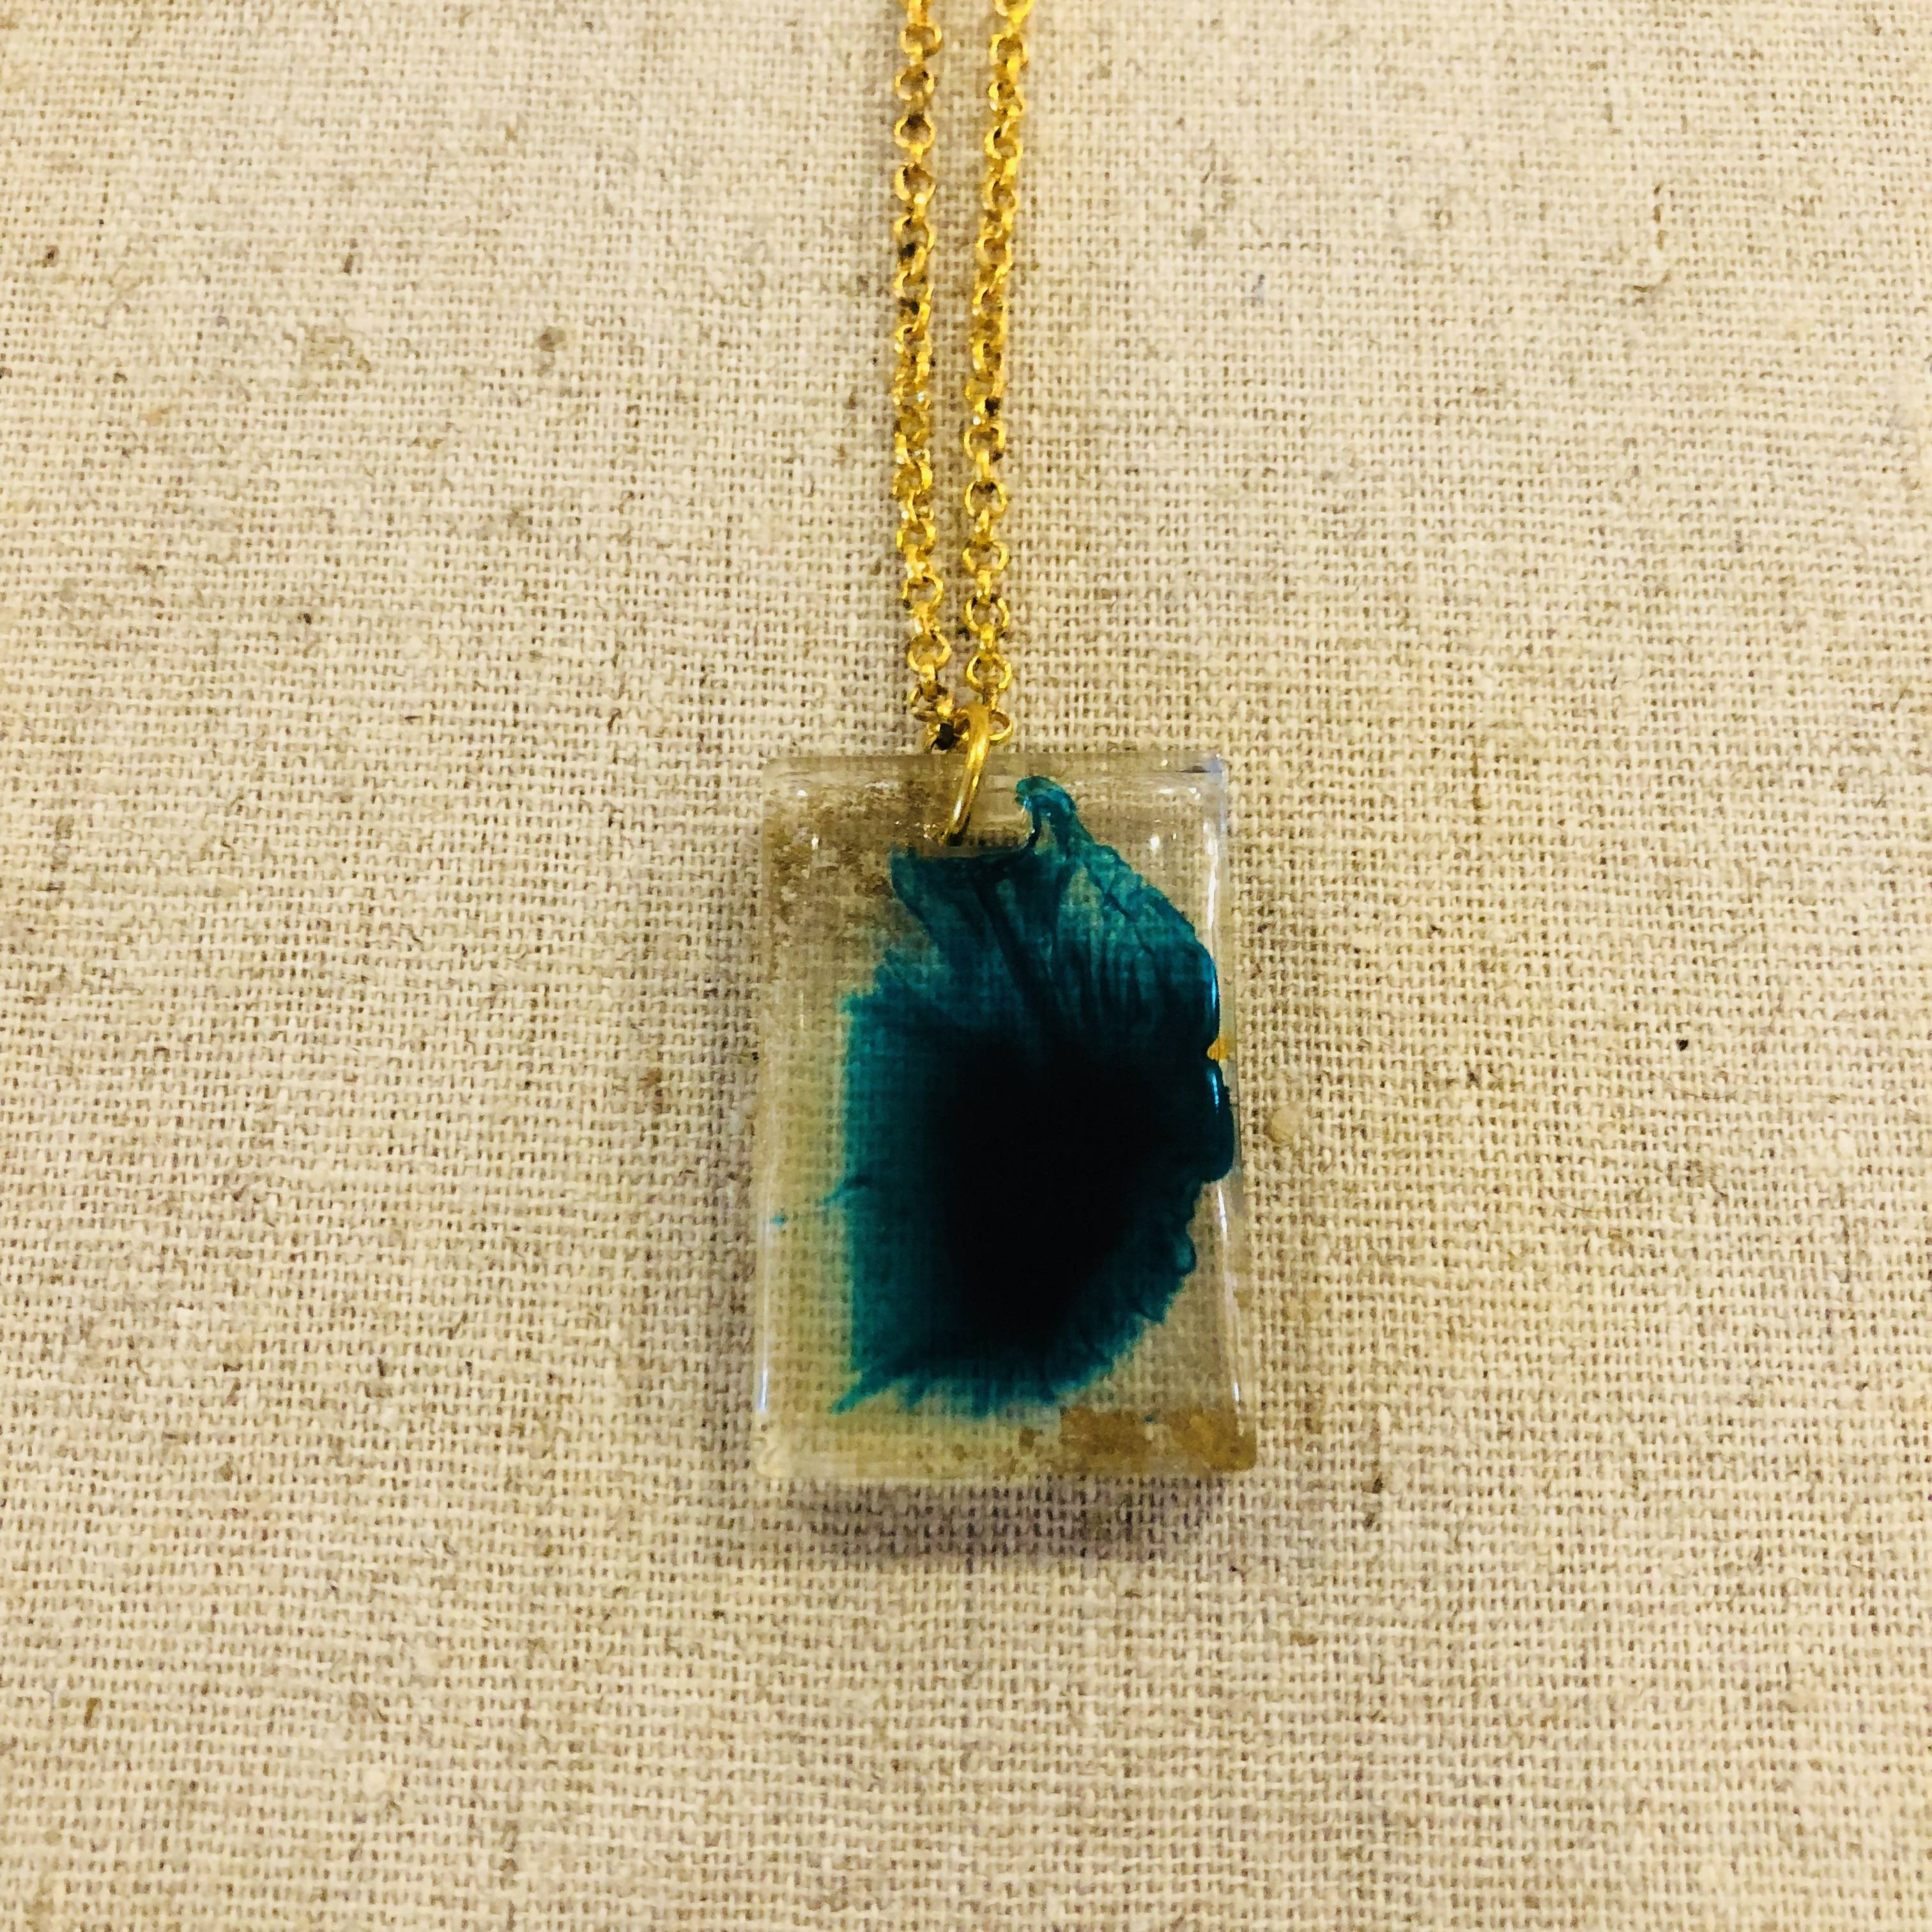 Beautiful teal feathery pendant necklace